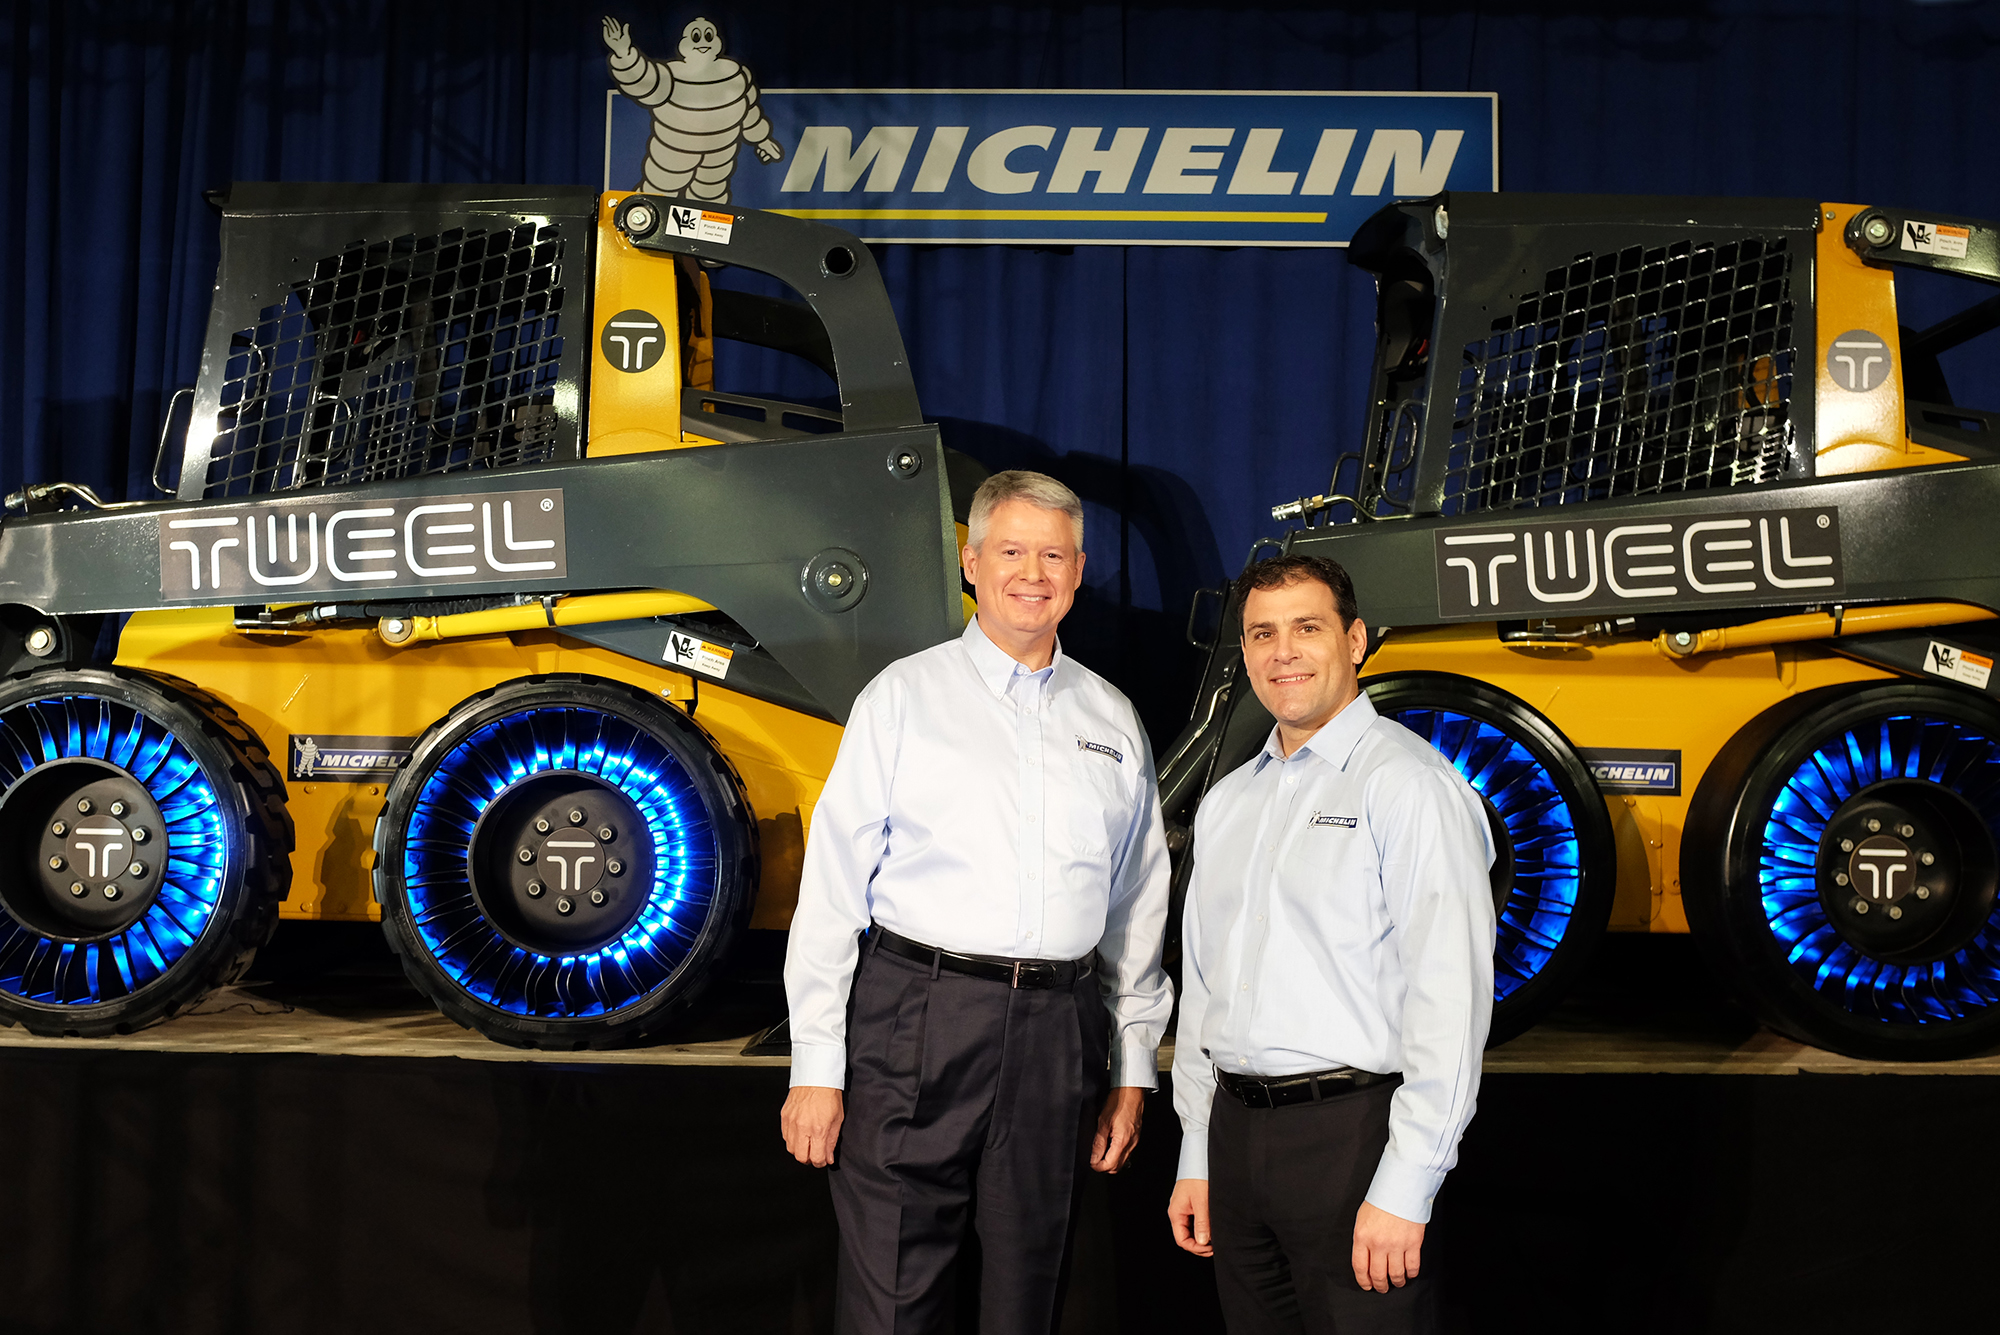 John Deere 100 Series >> MICHELIN OPENS WORLD'S FIRST MANUFACTURING PLANT TO BUILD REVOLUTIONARY AIRLESS RADIAL TIRE